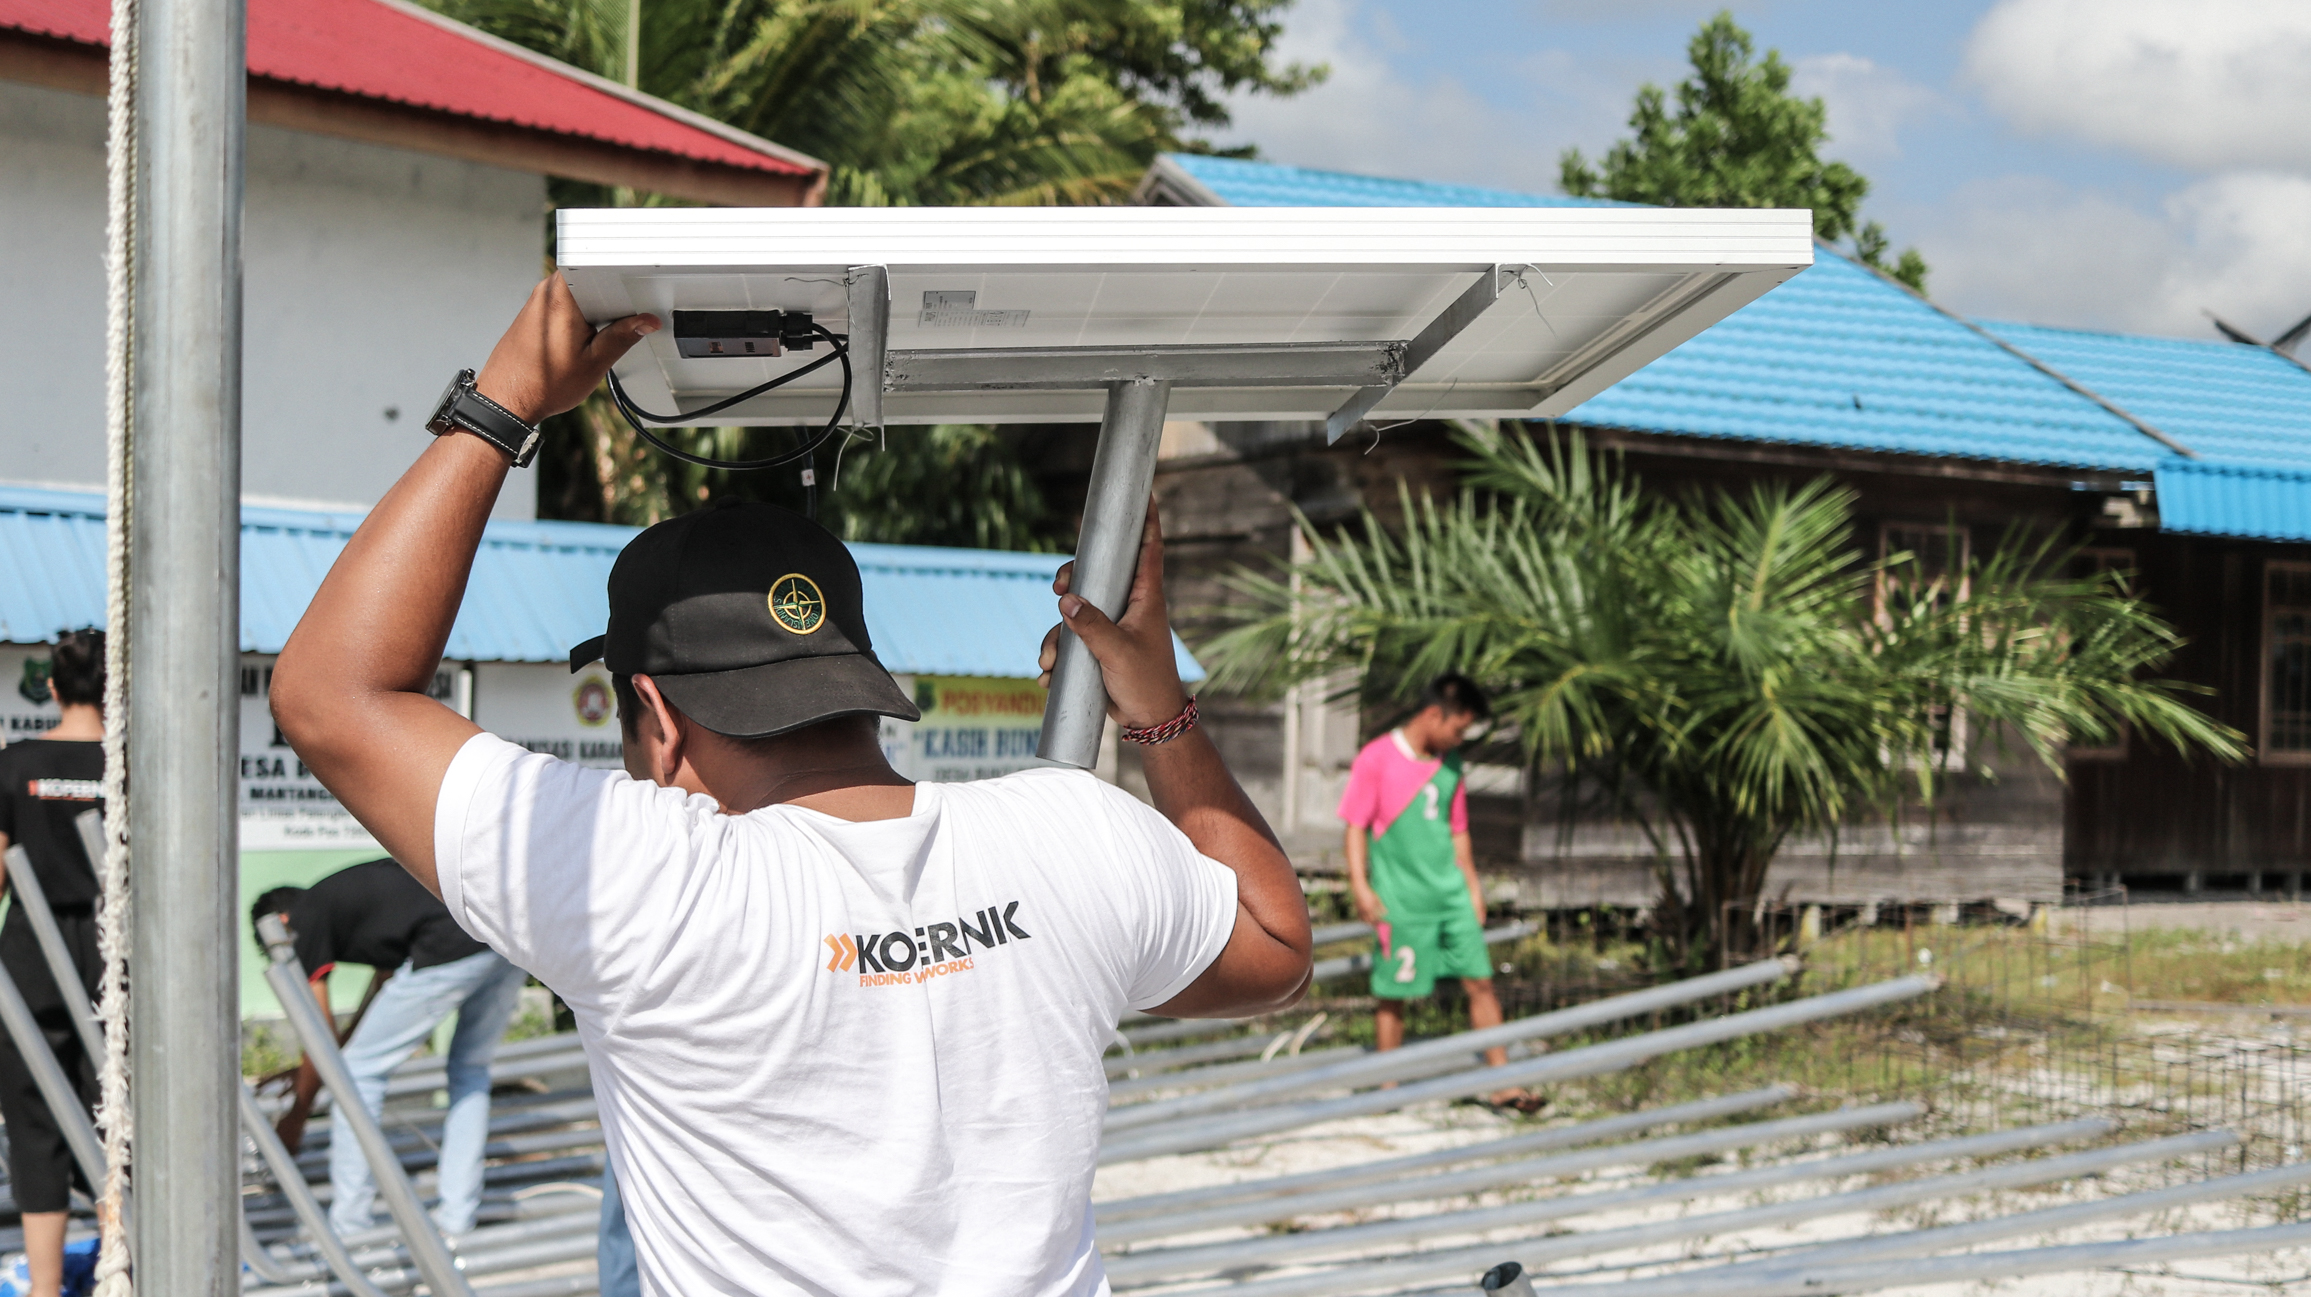 Providing Energy Access: Solévolt Off-Grid Solar System